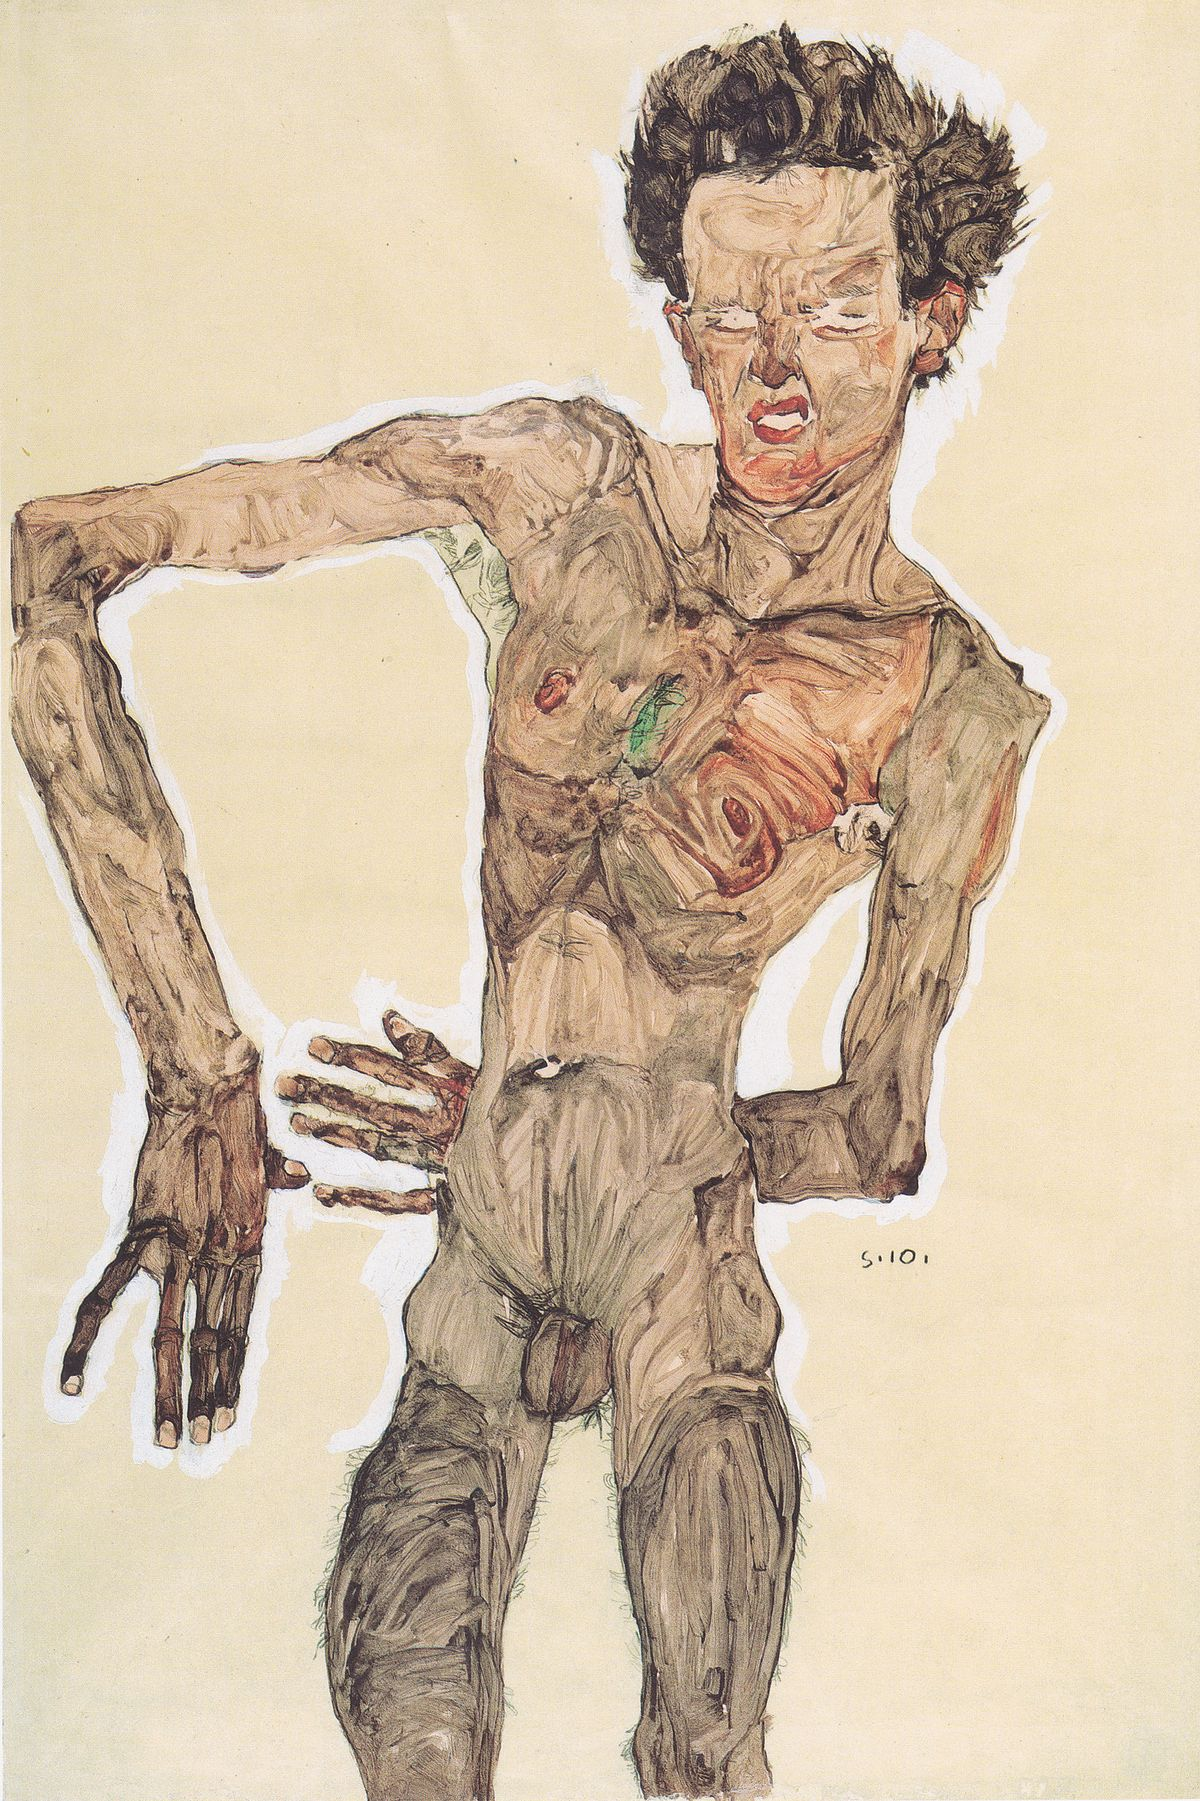 https://upload.wikimedia.org/wikipedia/commons/thumb/a/aa/Egon_Schiele_-_Grimassierendes_Aktselbstbildnis_-_1910.jpeg/1200px-Egon_Schiele_-_Grimassierendes_Aktselbstbildnis_-_1910.jpeg